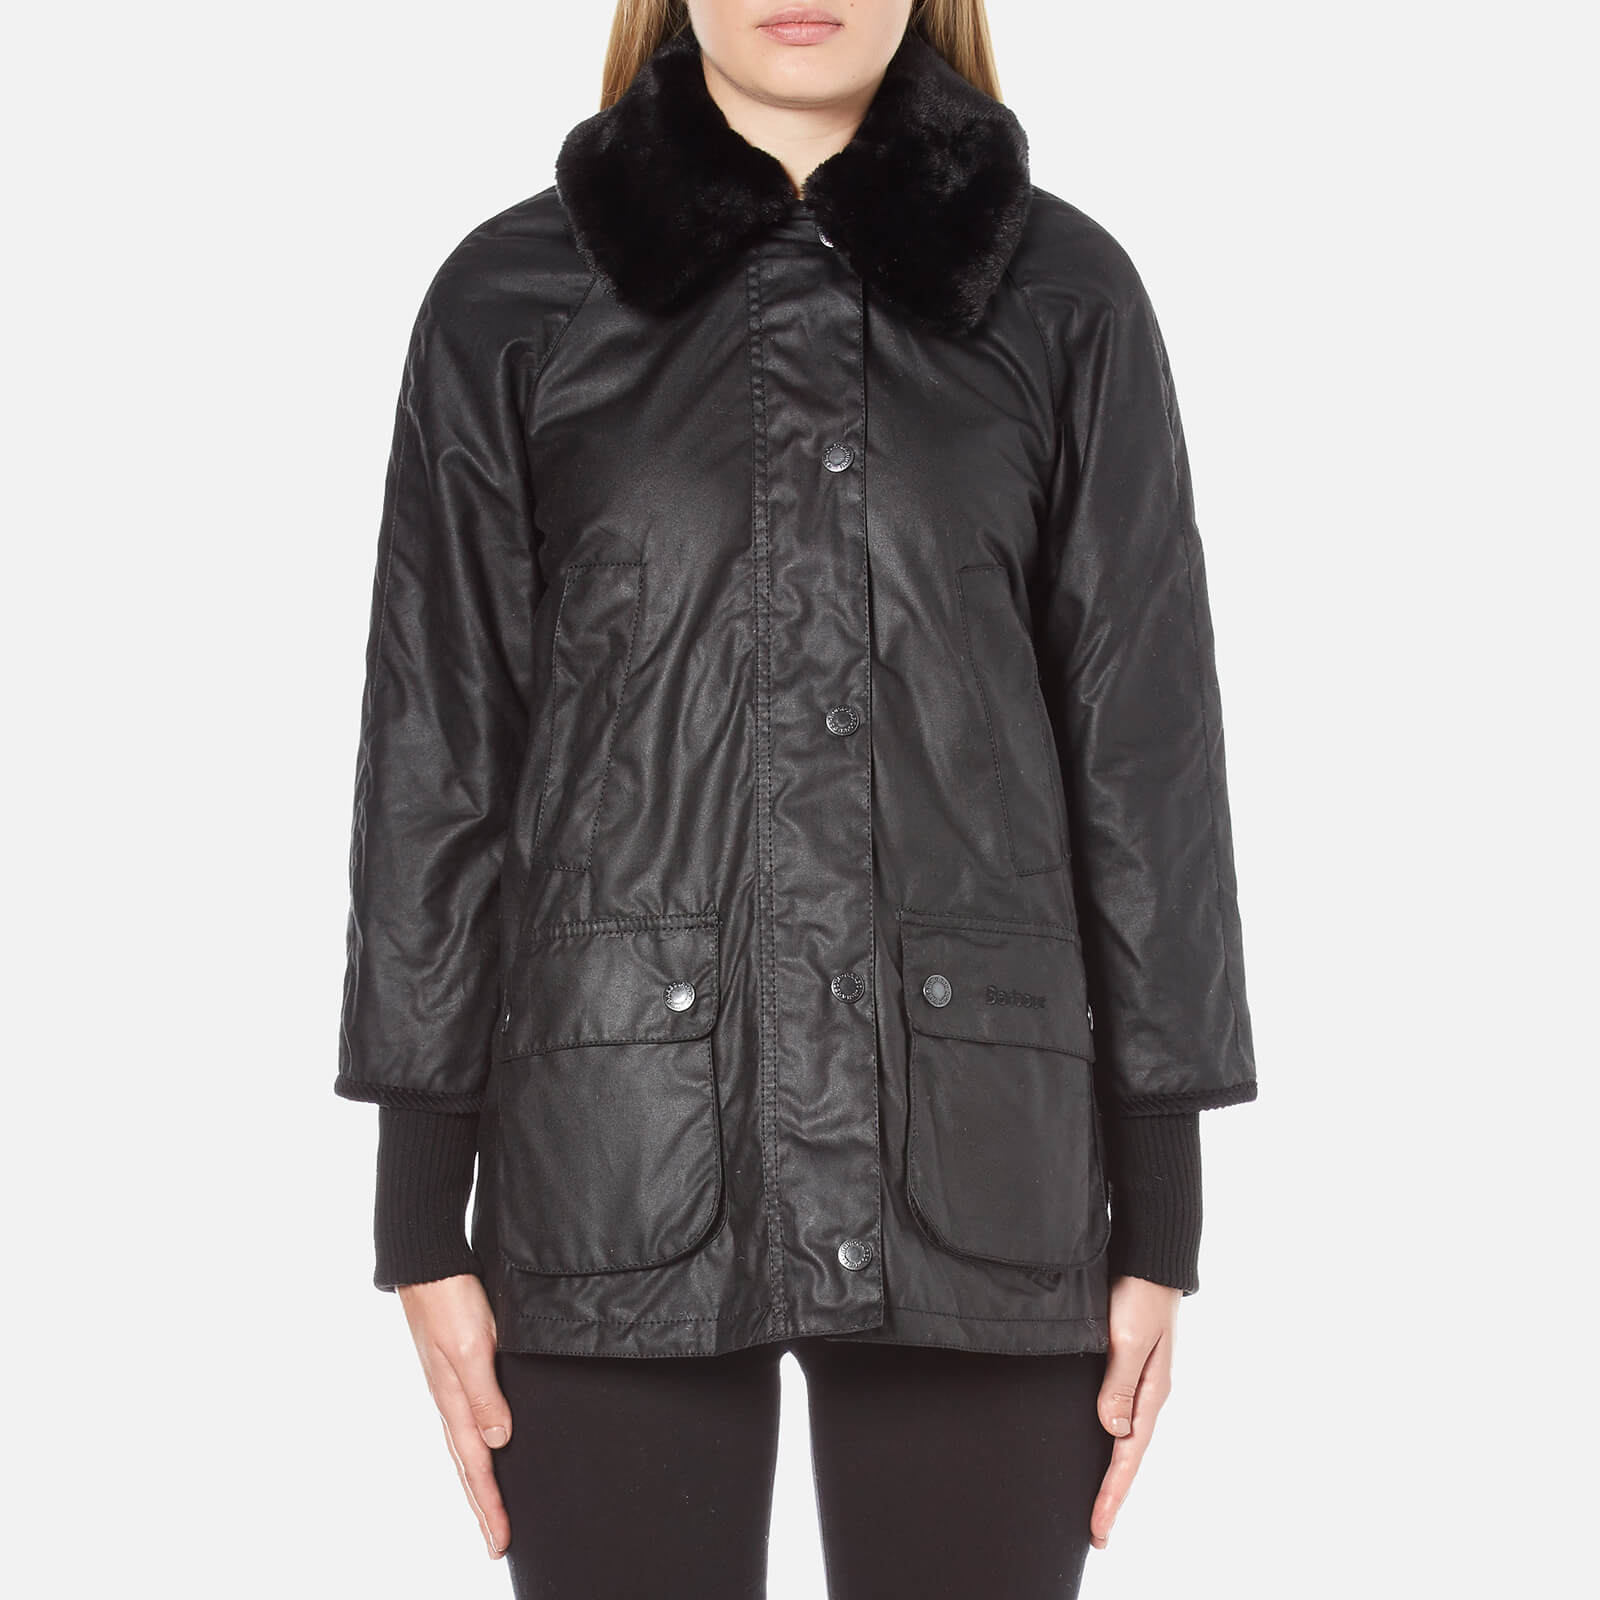 aa6c5c2ed9426 Barbour Women's Snow Bedale Jacket - Black - Free UK Delivery over £50